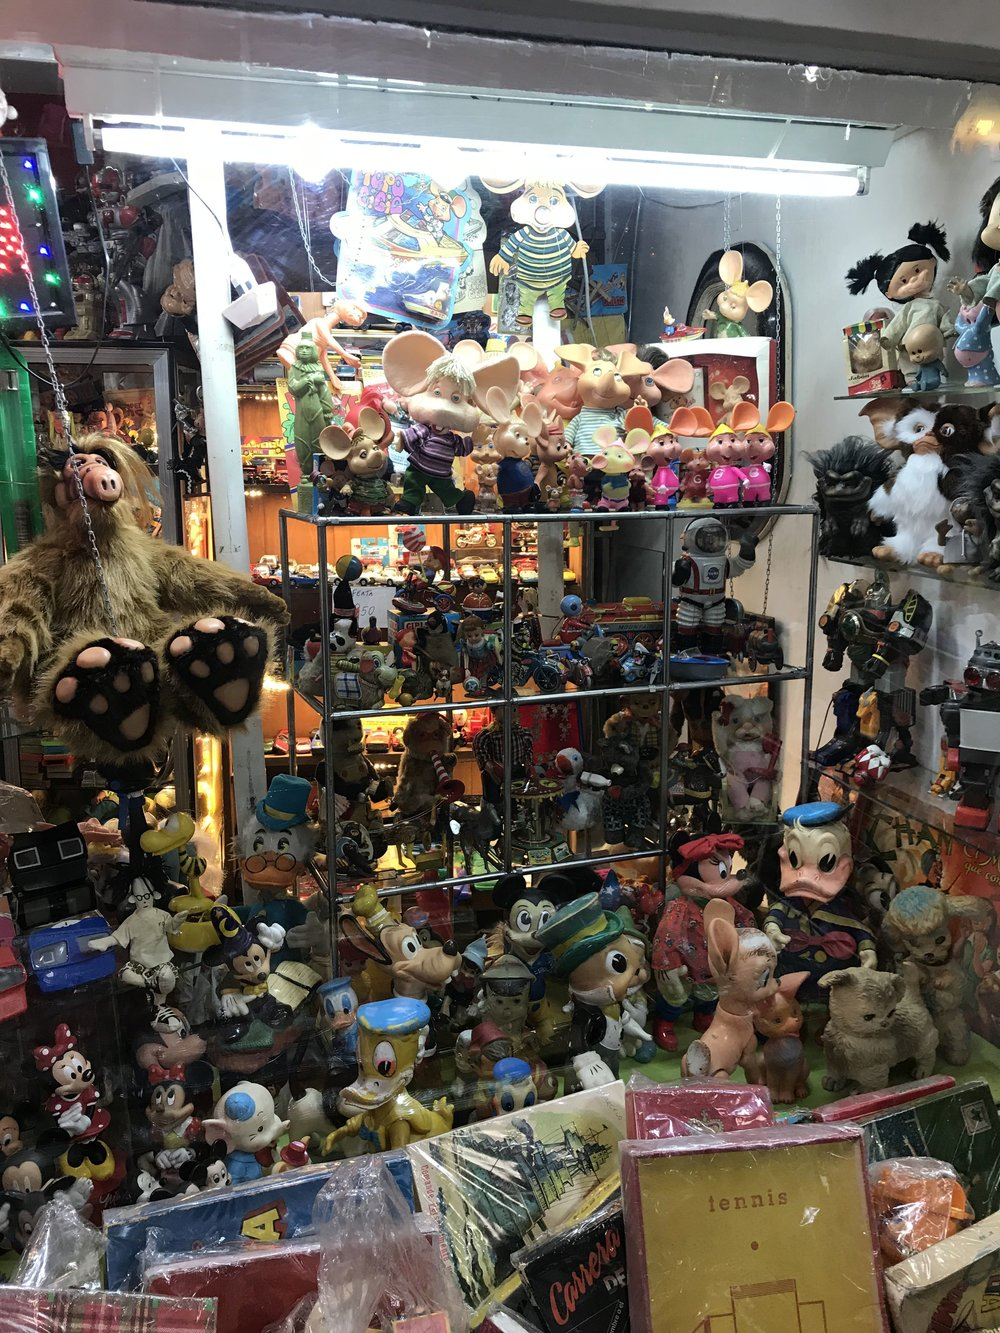 Other things you can buy and see at San Telmo Market? NIGHTMARE FUEL. Ugh.